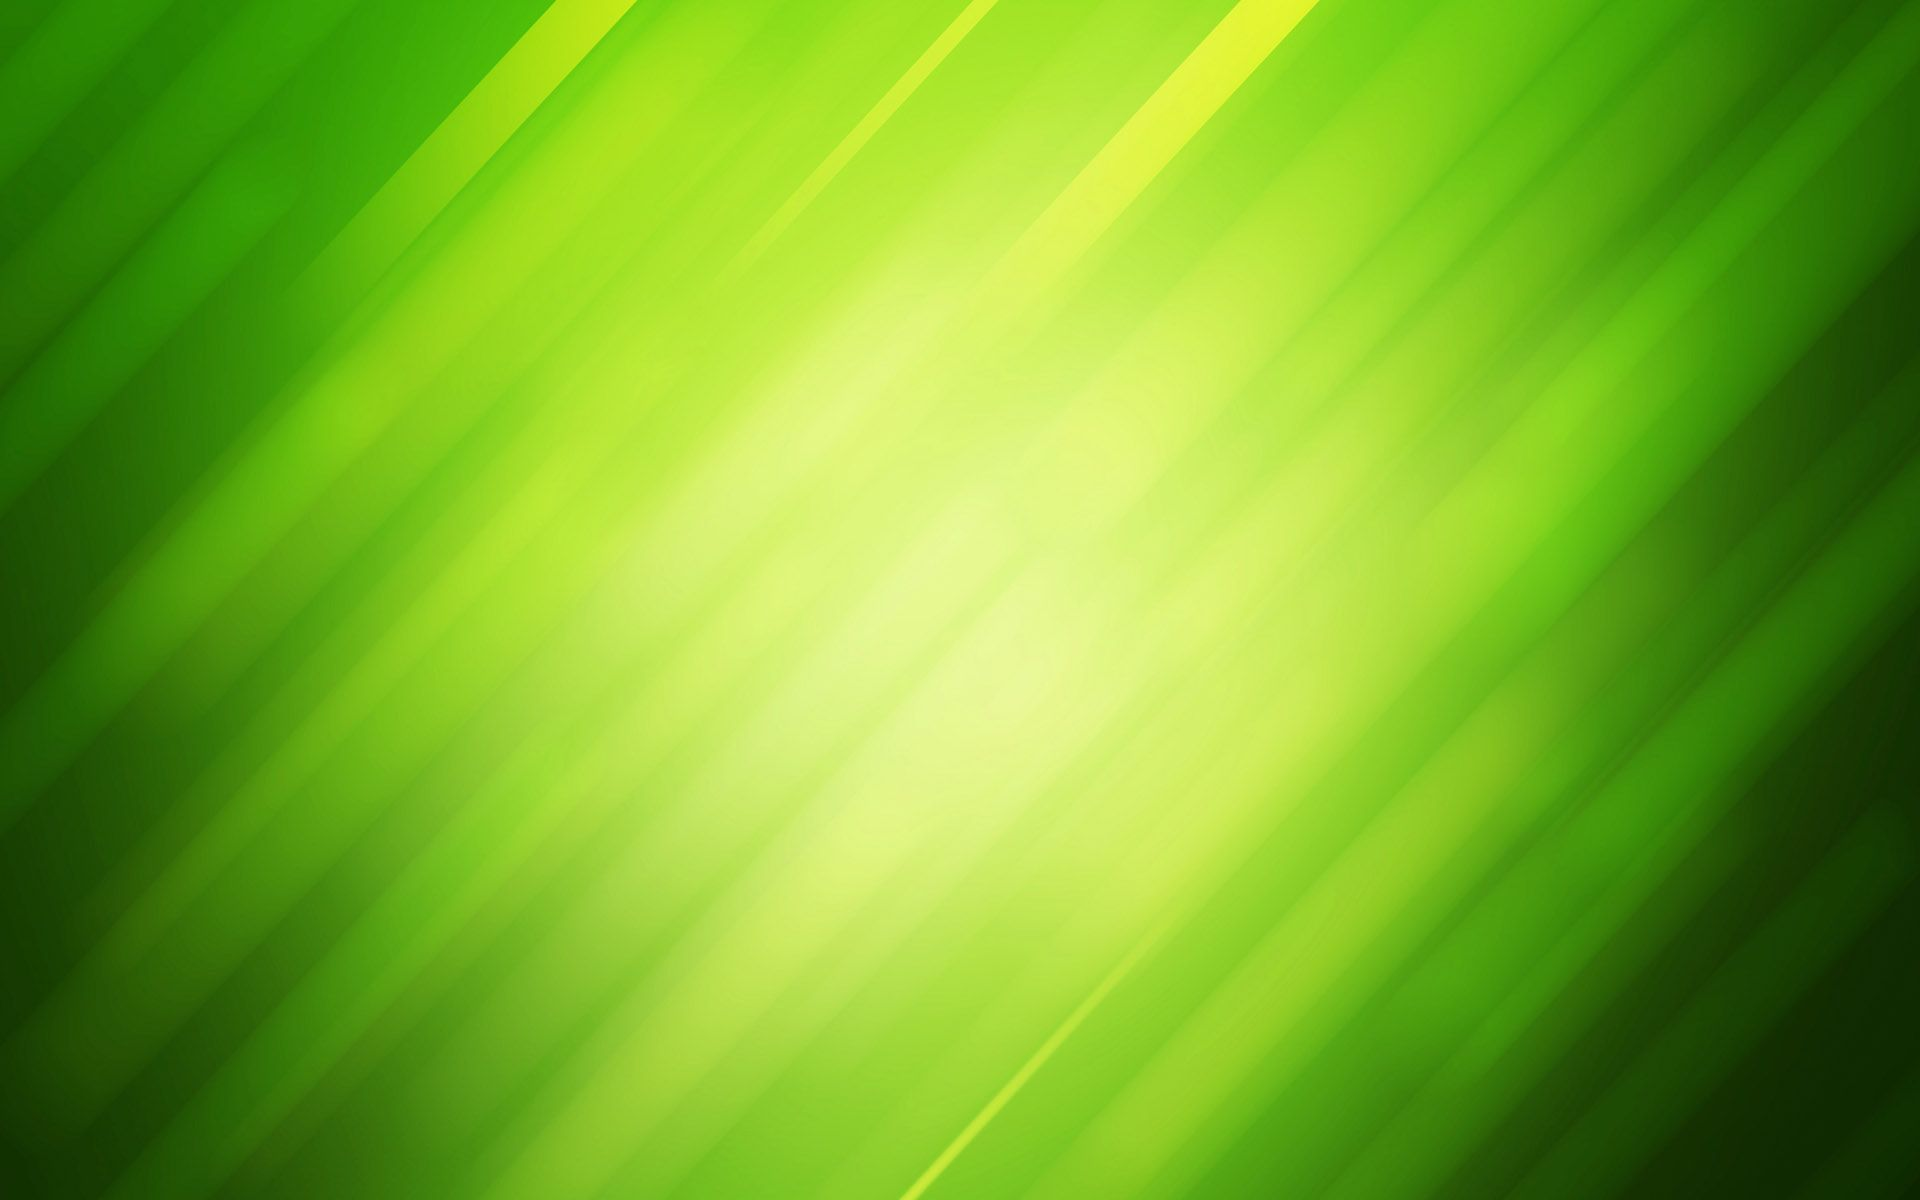 1920x1200 Cool Green Wallpaper - WallpaperSafari | imágenes coloridas del vector en